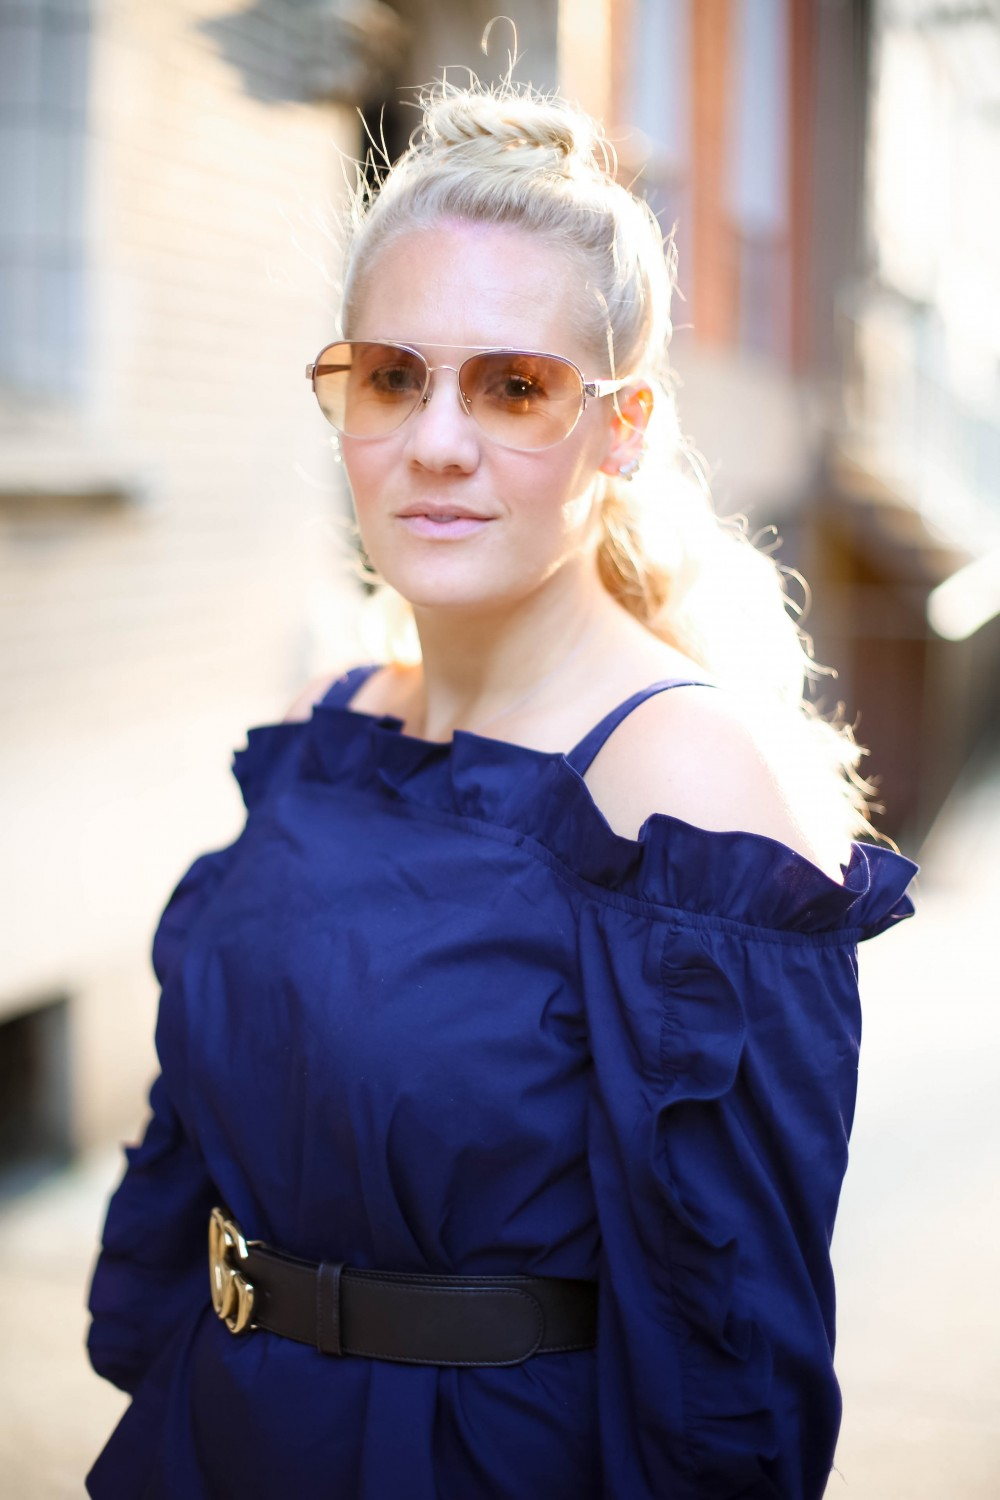 Marled Ruffle Cold-Shoulder Top, Marled by Reunited Clothing, NYFW Street Style, Tresemme Hair, Unicorn Hairstyle, Outfit Inspiration, Ruffle Top, Have Need Want